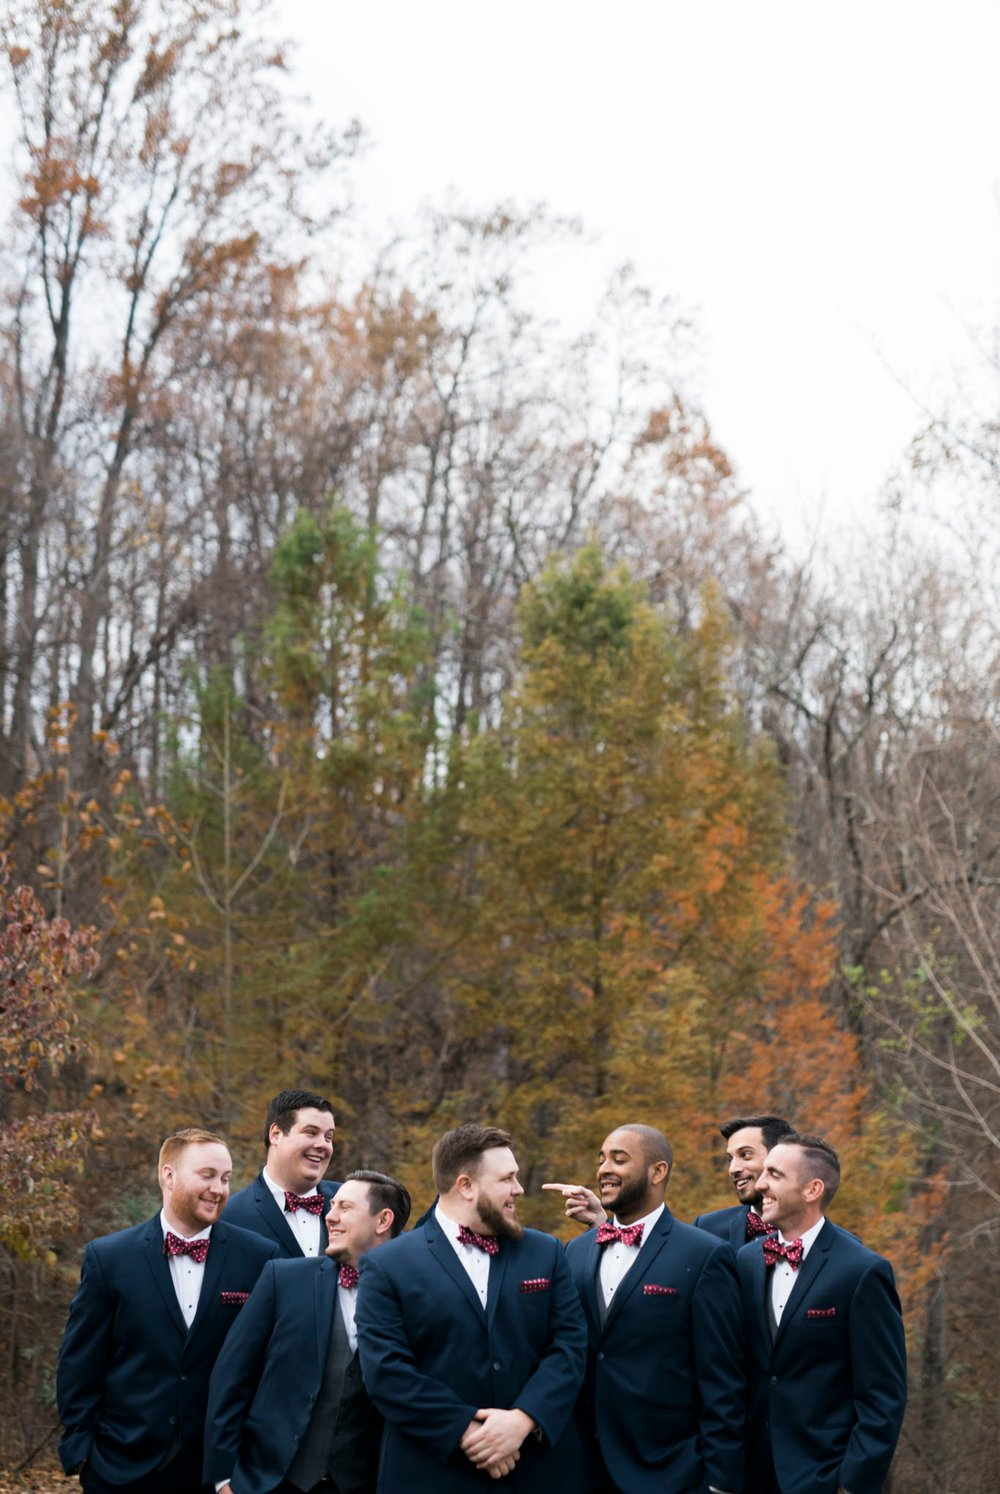 IrvineEstate_LexingtonVA_Wedding_FallWedding_VirginiaWeddingPhotographer 31.jpg